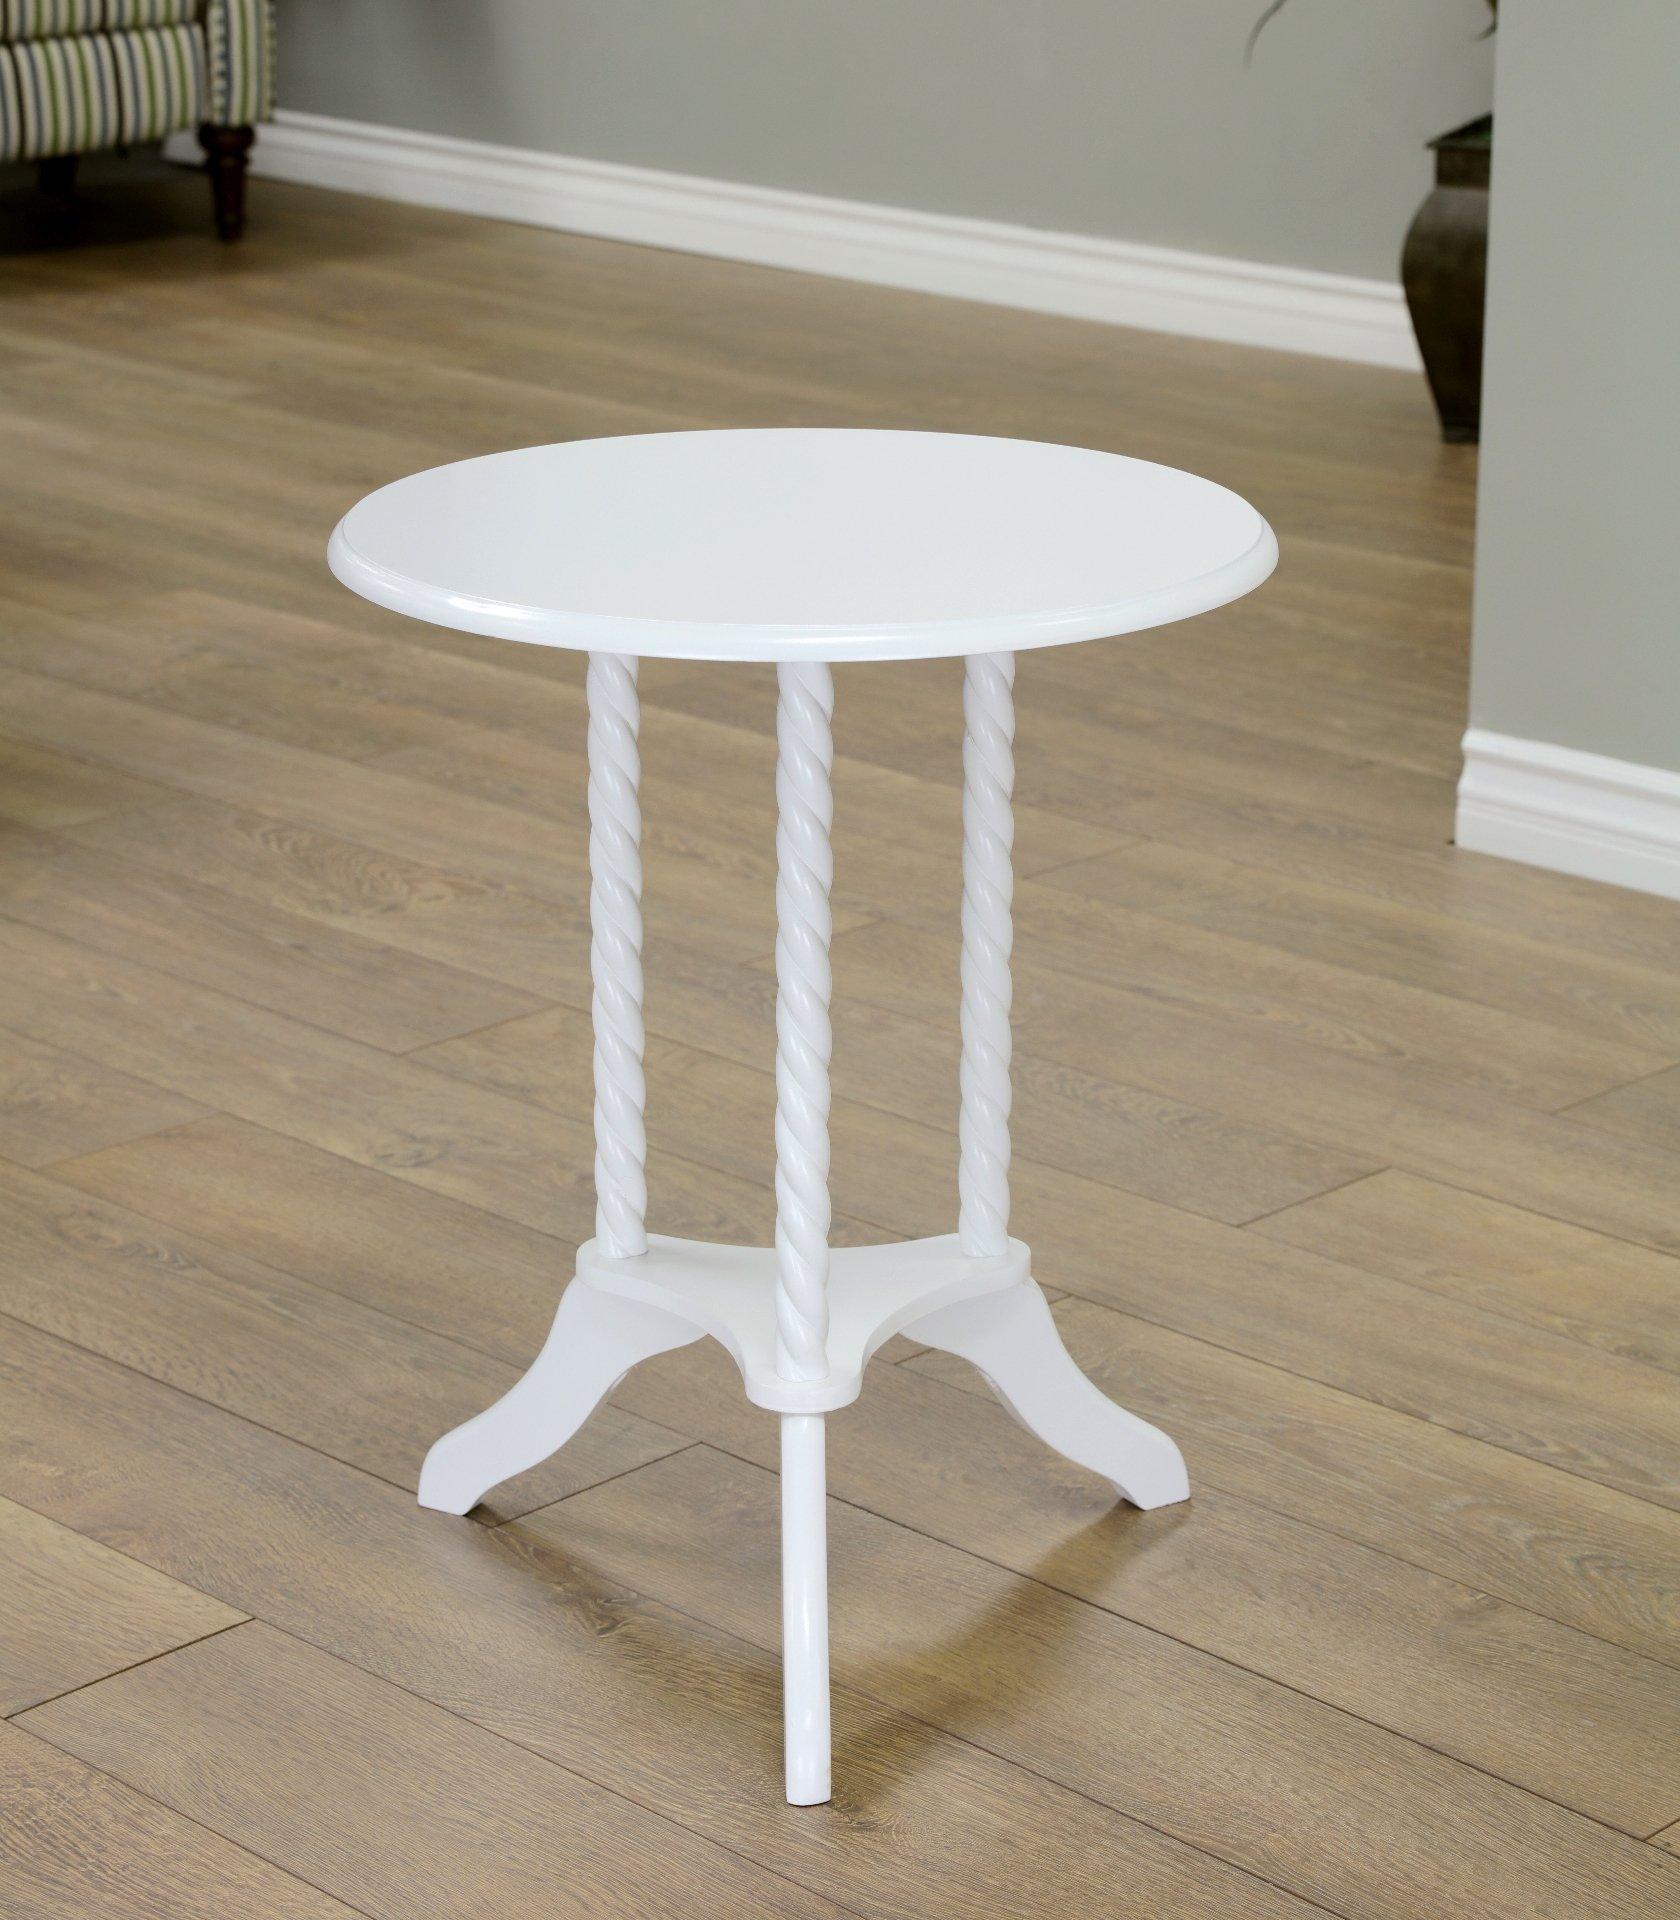 Frenchi Home Furnishing Round End Table by Frenchi Home Furnishing